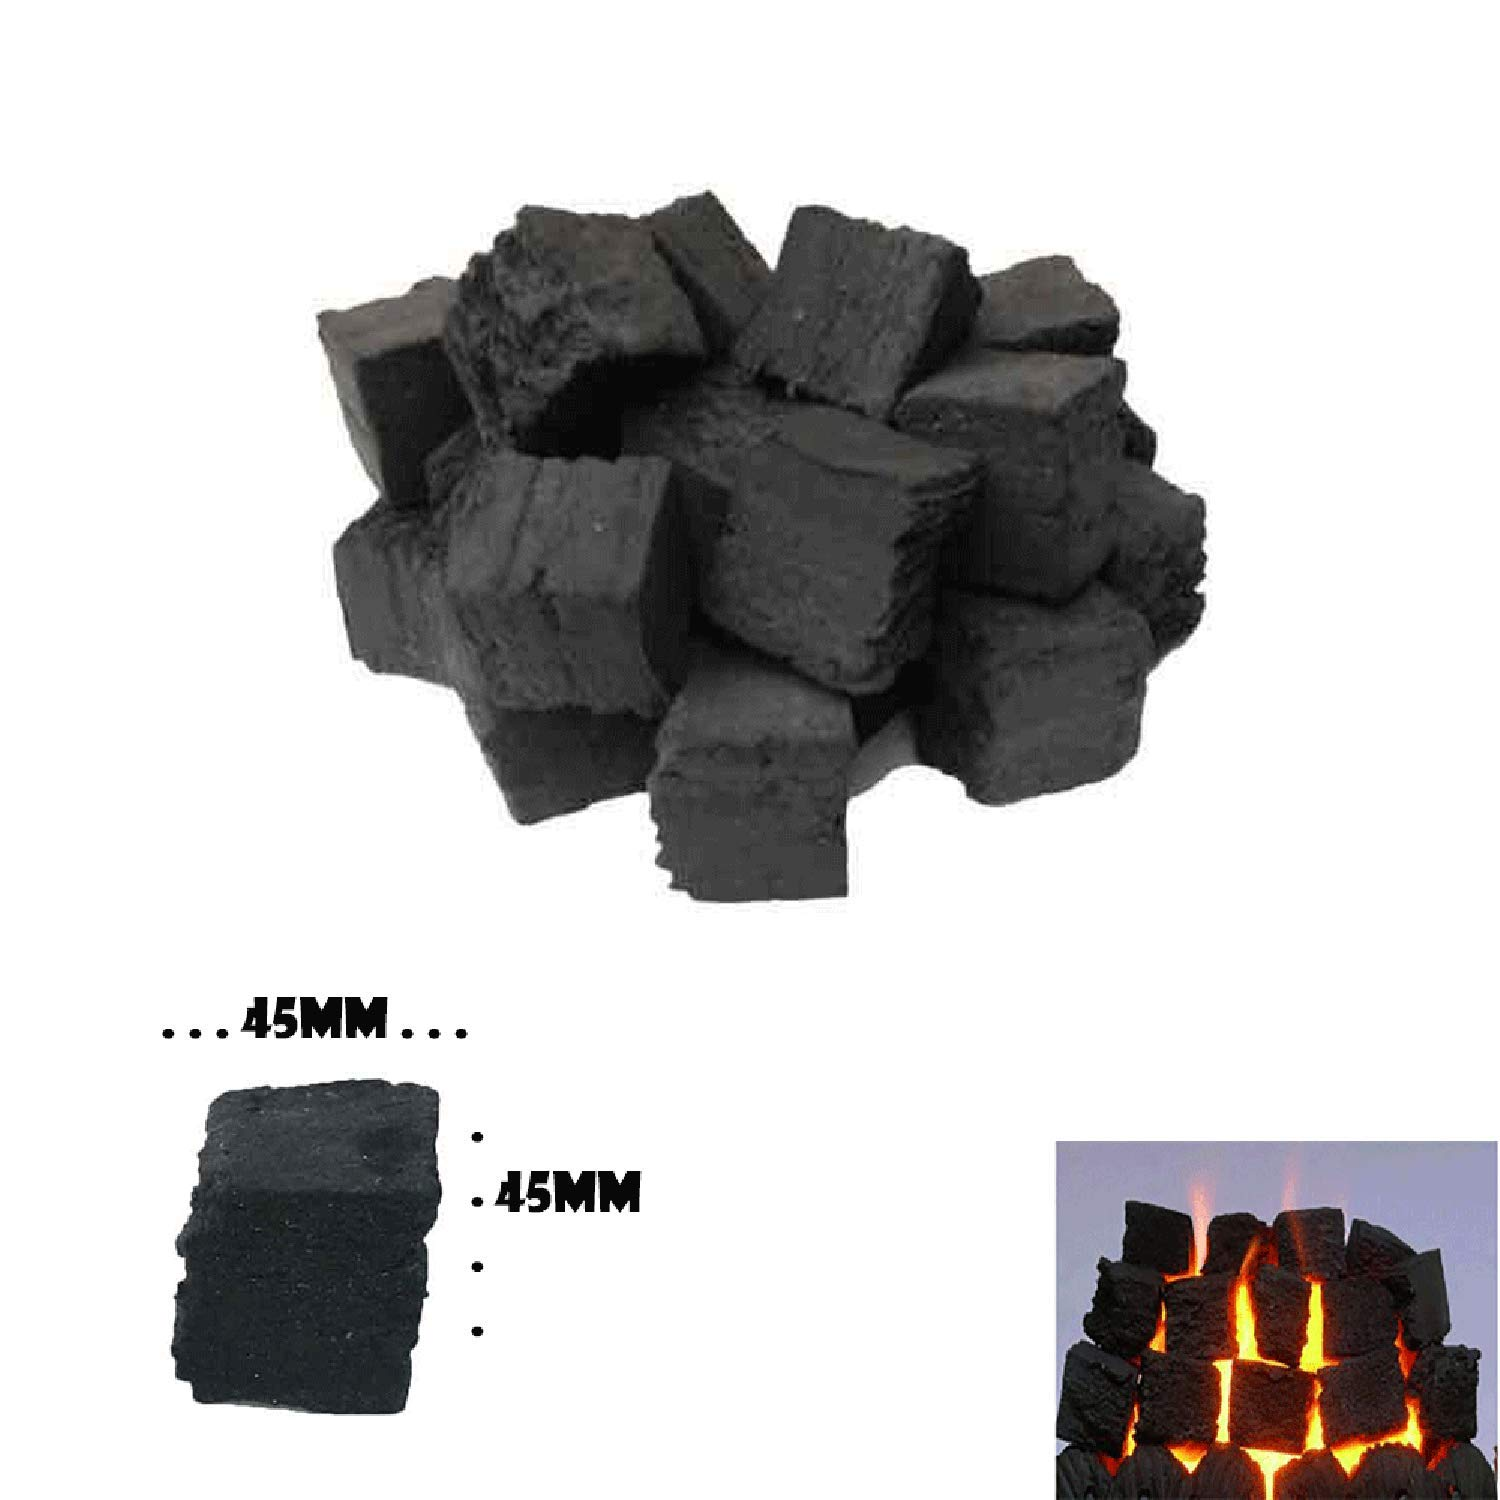 20 GAS FIRE REPLACEMENT COALS COAL SQUARE CERAMIC 50MM SPECIAL OFFER NEW SELLER